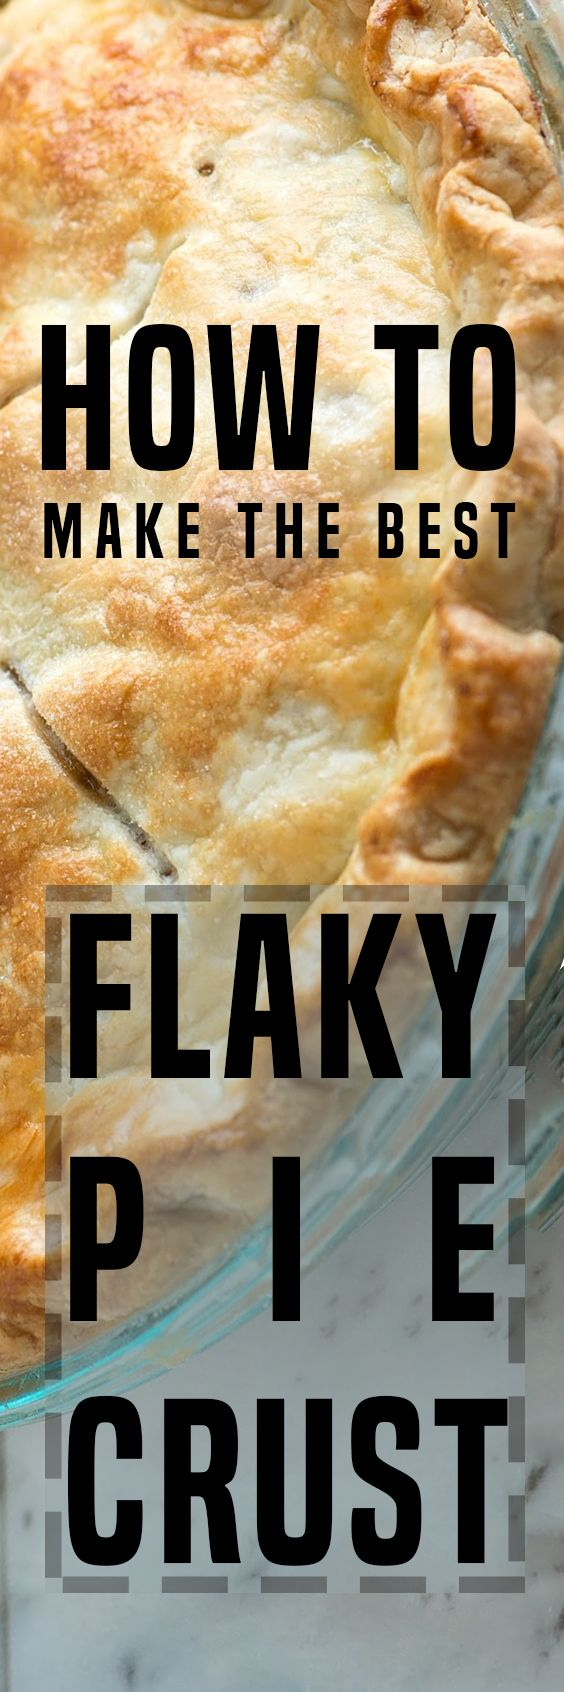 How to Make the Best Flaky Pie Crust